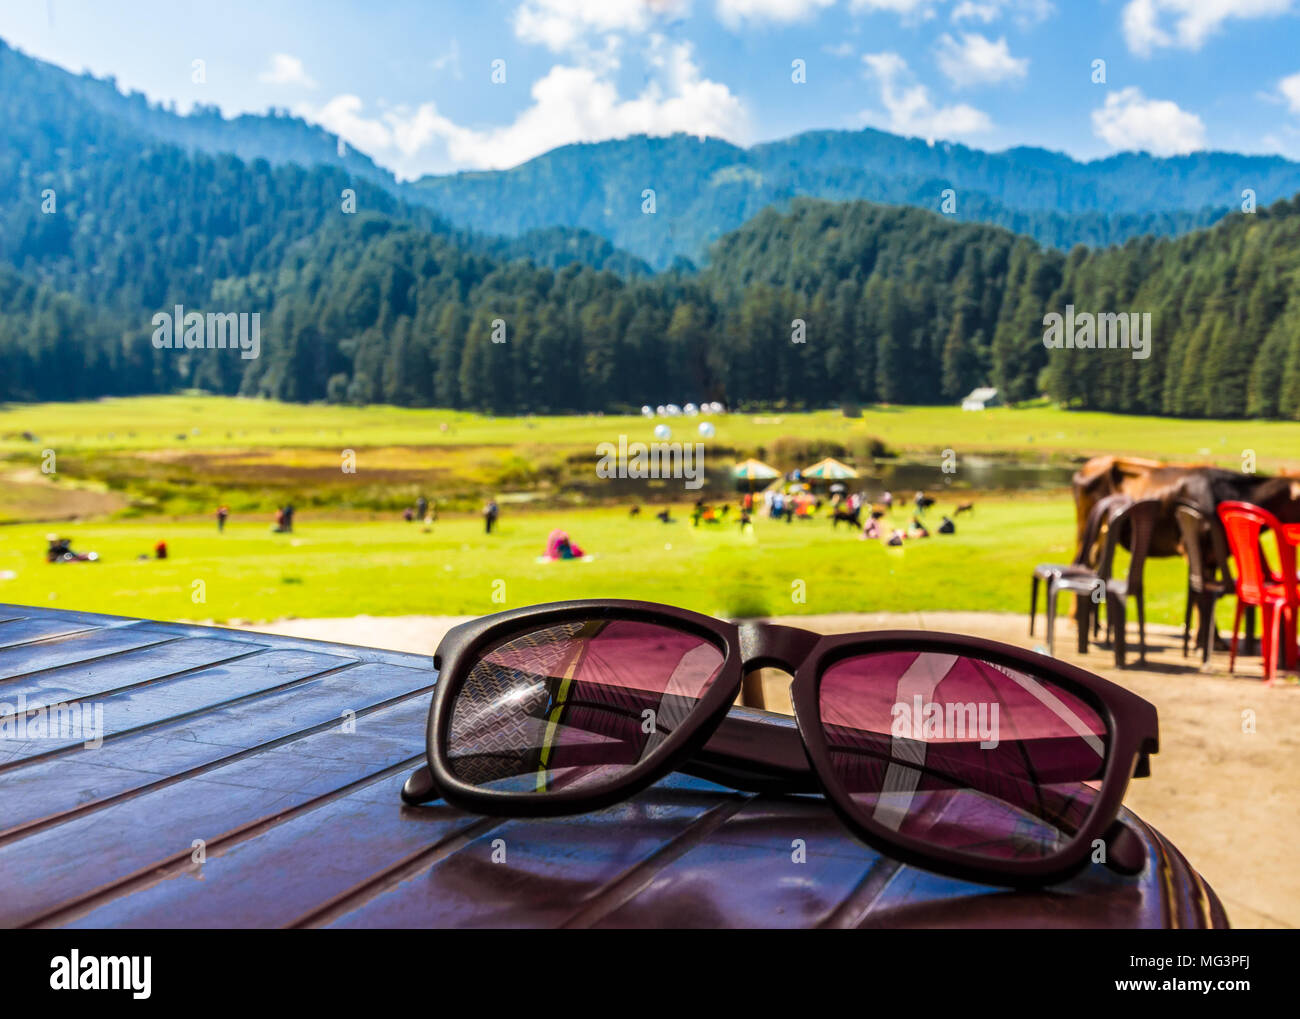 Cool shades and mountains in the background offering a majestic picturesque view of Khajjiar, Dalhousie, Himachal Pradesh, India. - Stock Image